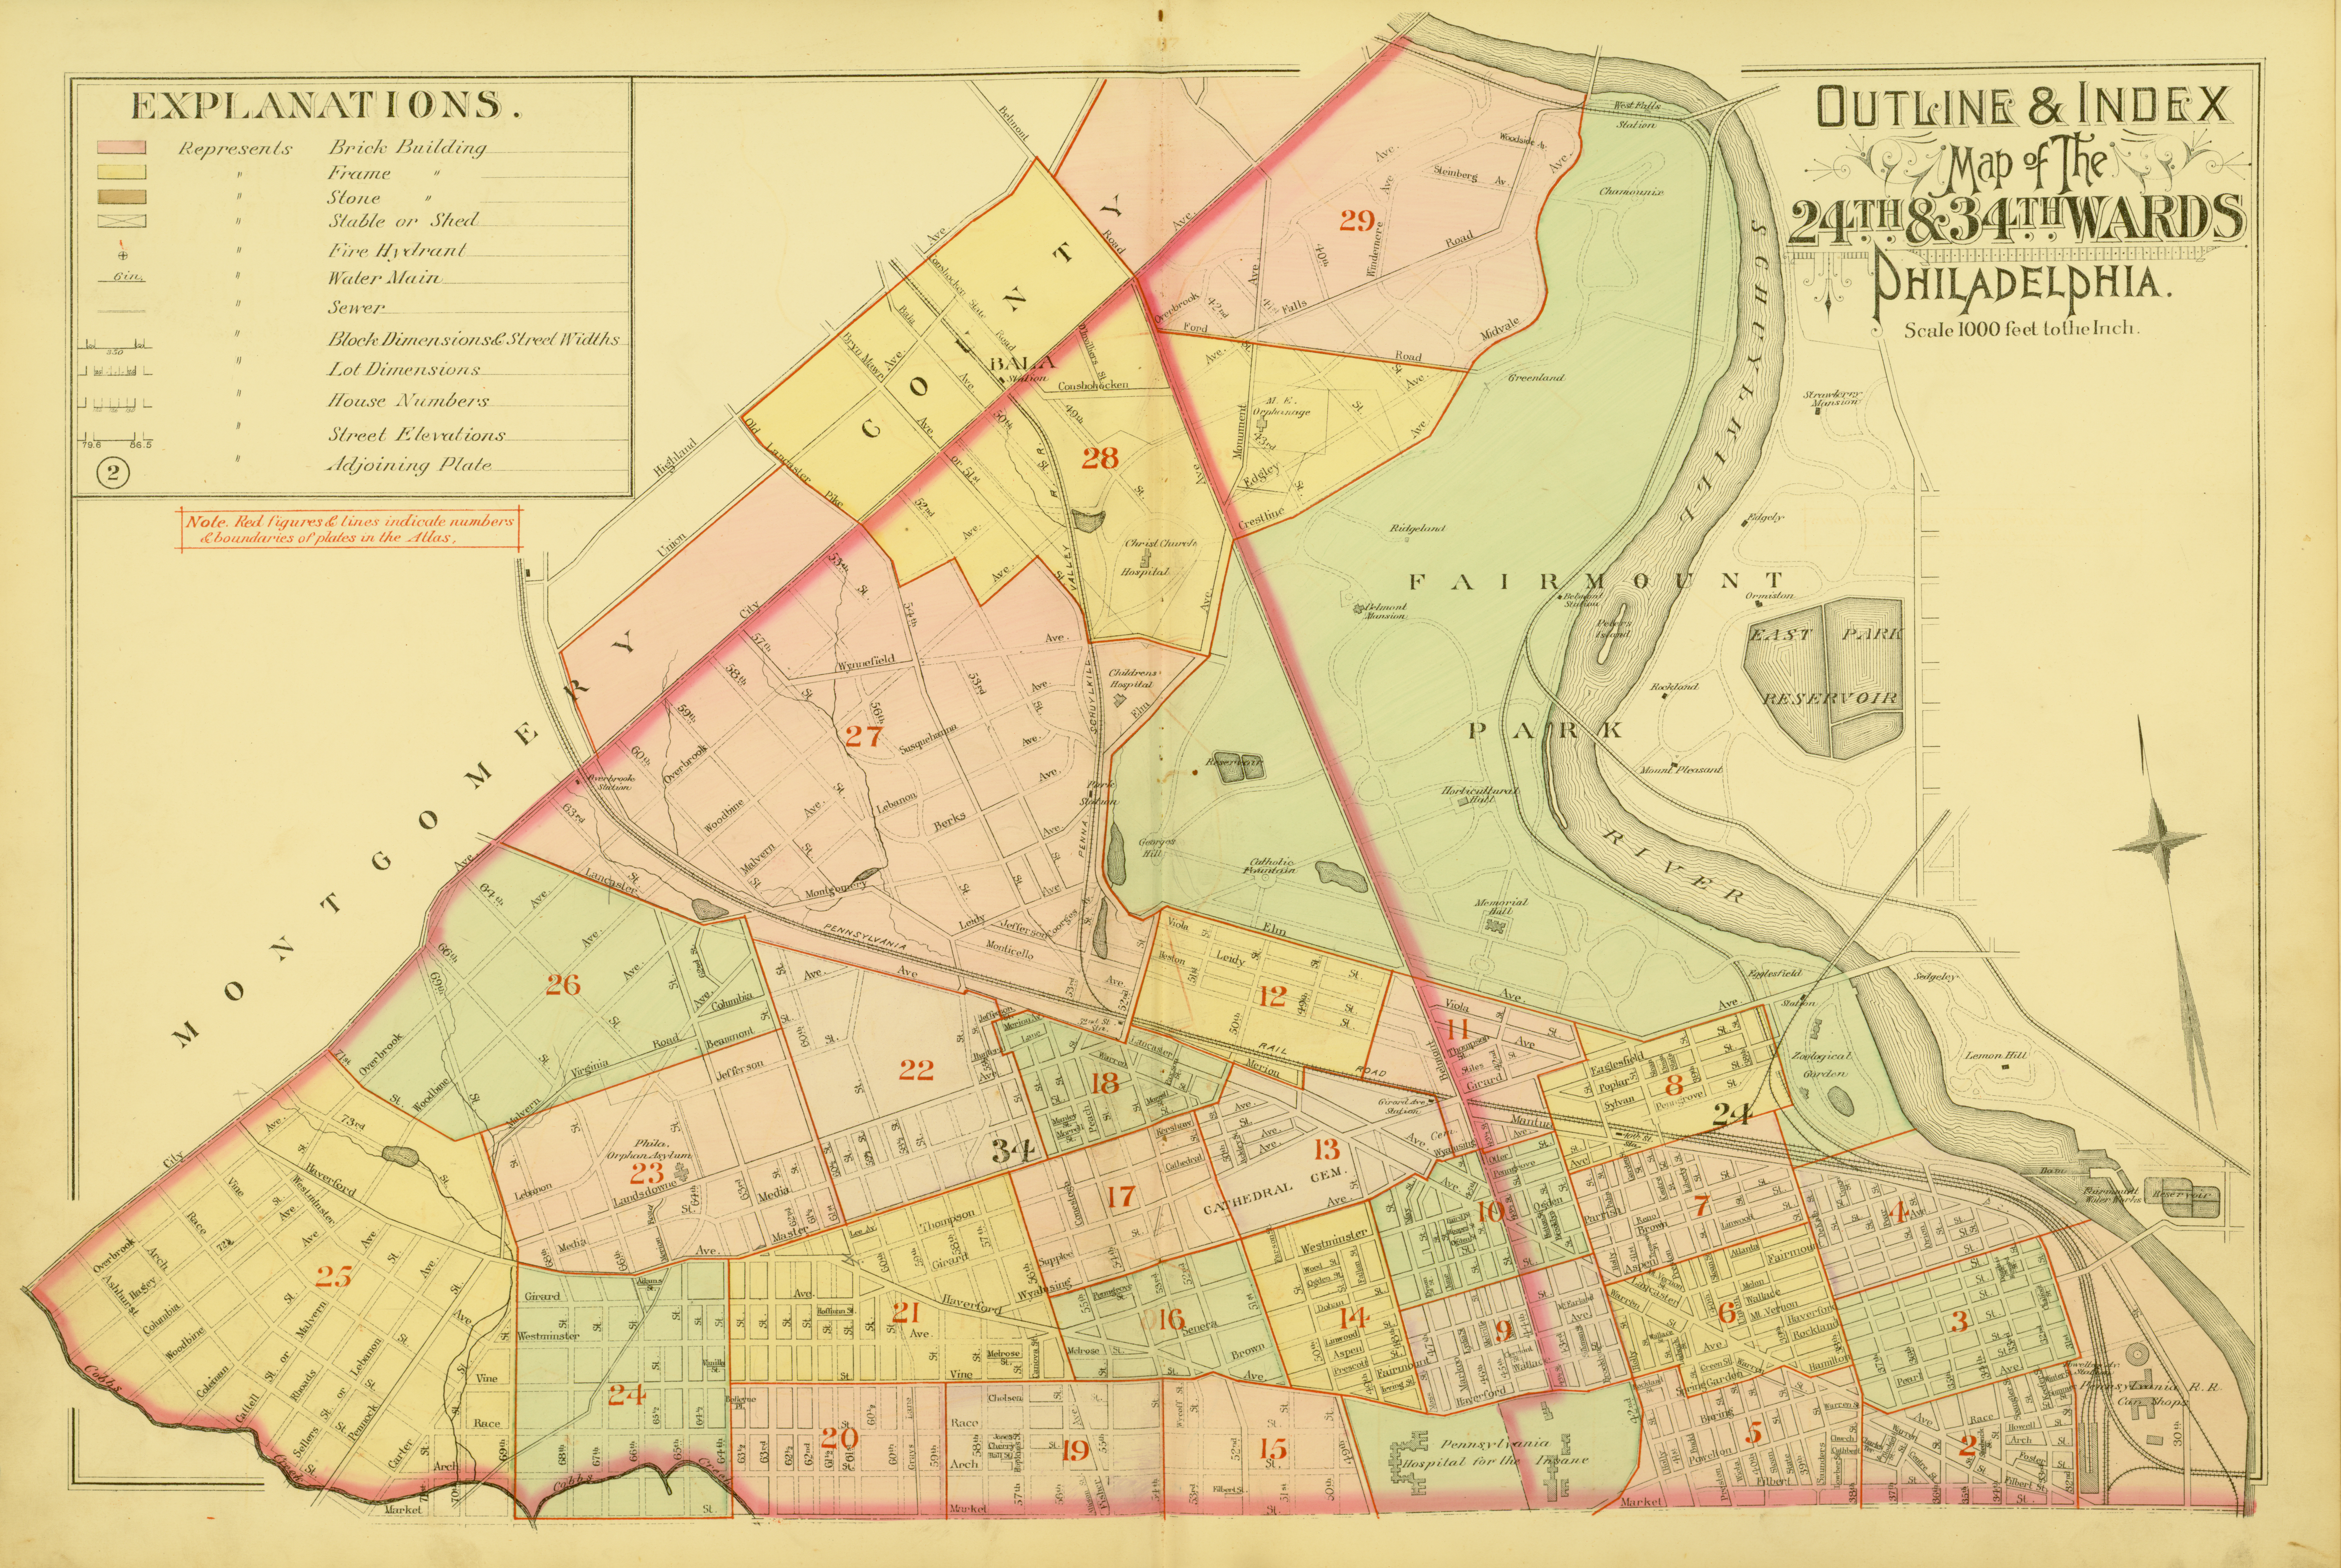 1892 Atlas of the 24th and 34th Wards, West Philadelphia - Index Map